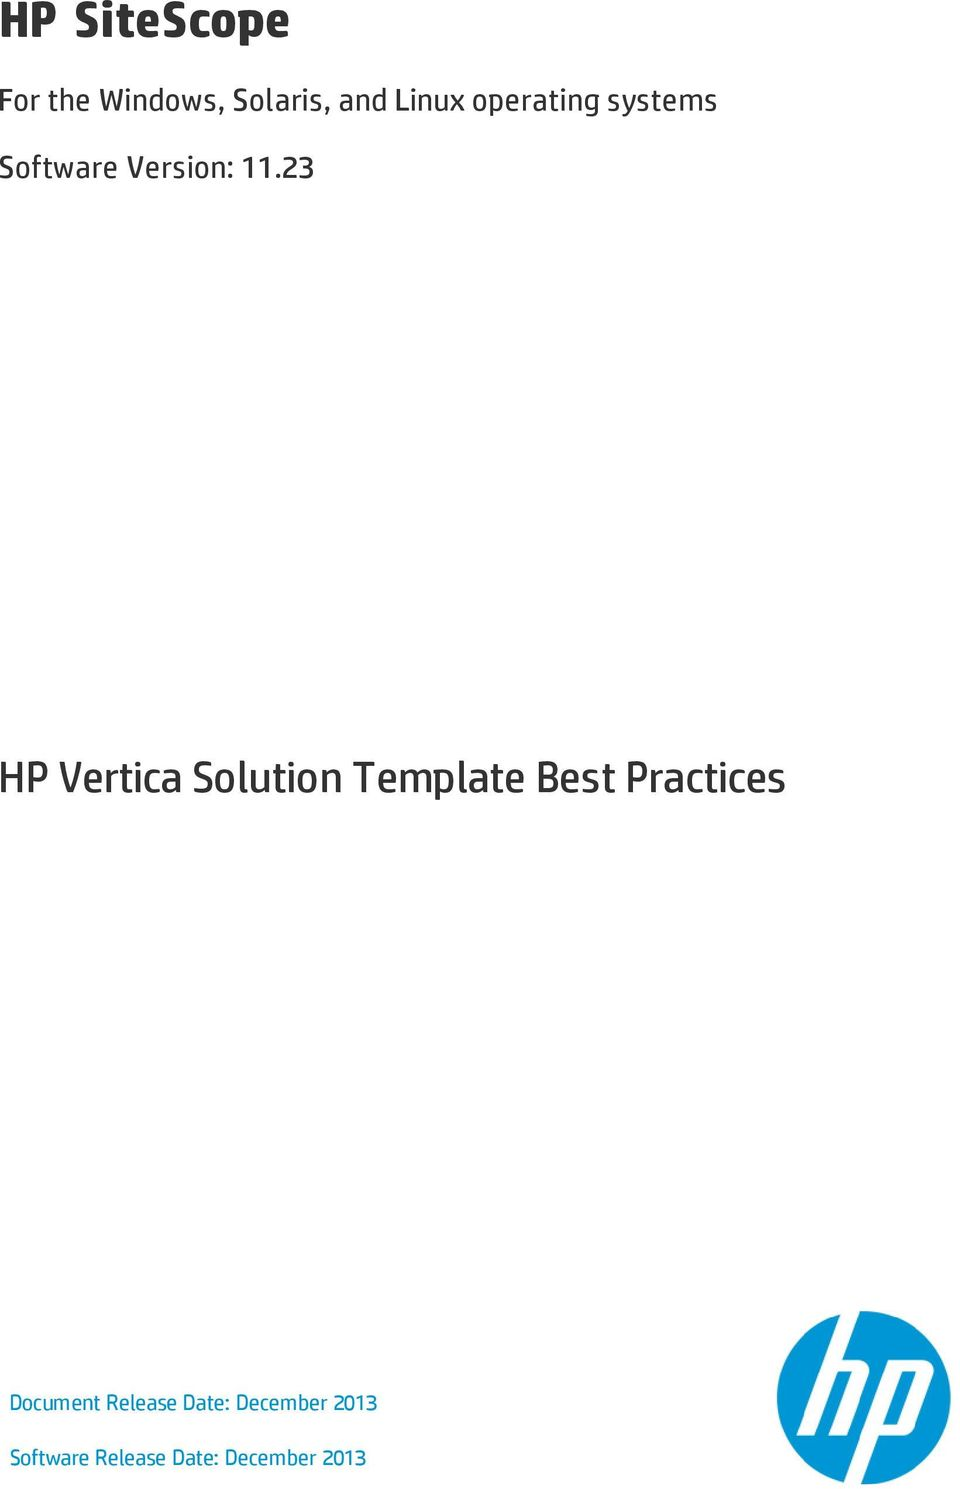 Hp sitescope hp vertica solution template best practices for Sitescope templates